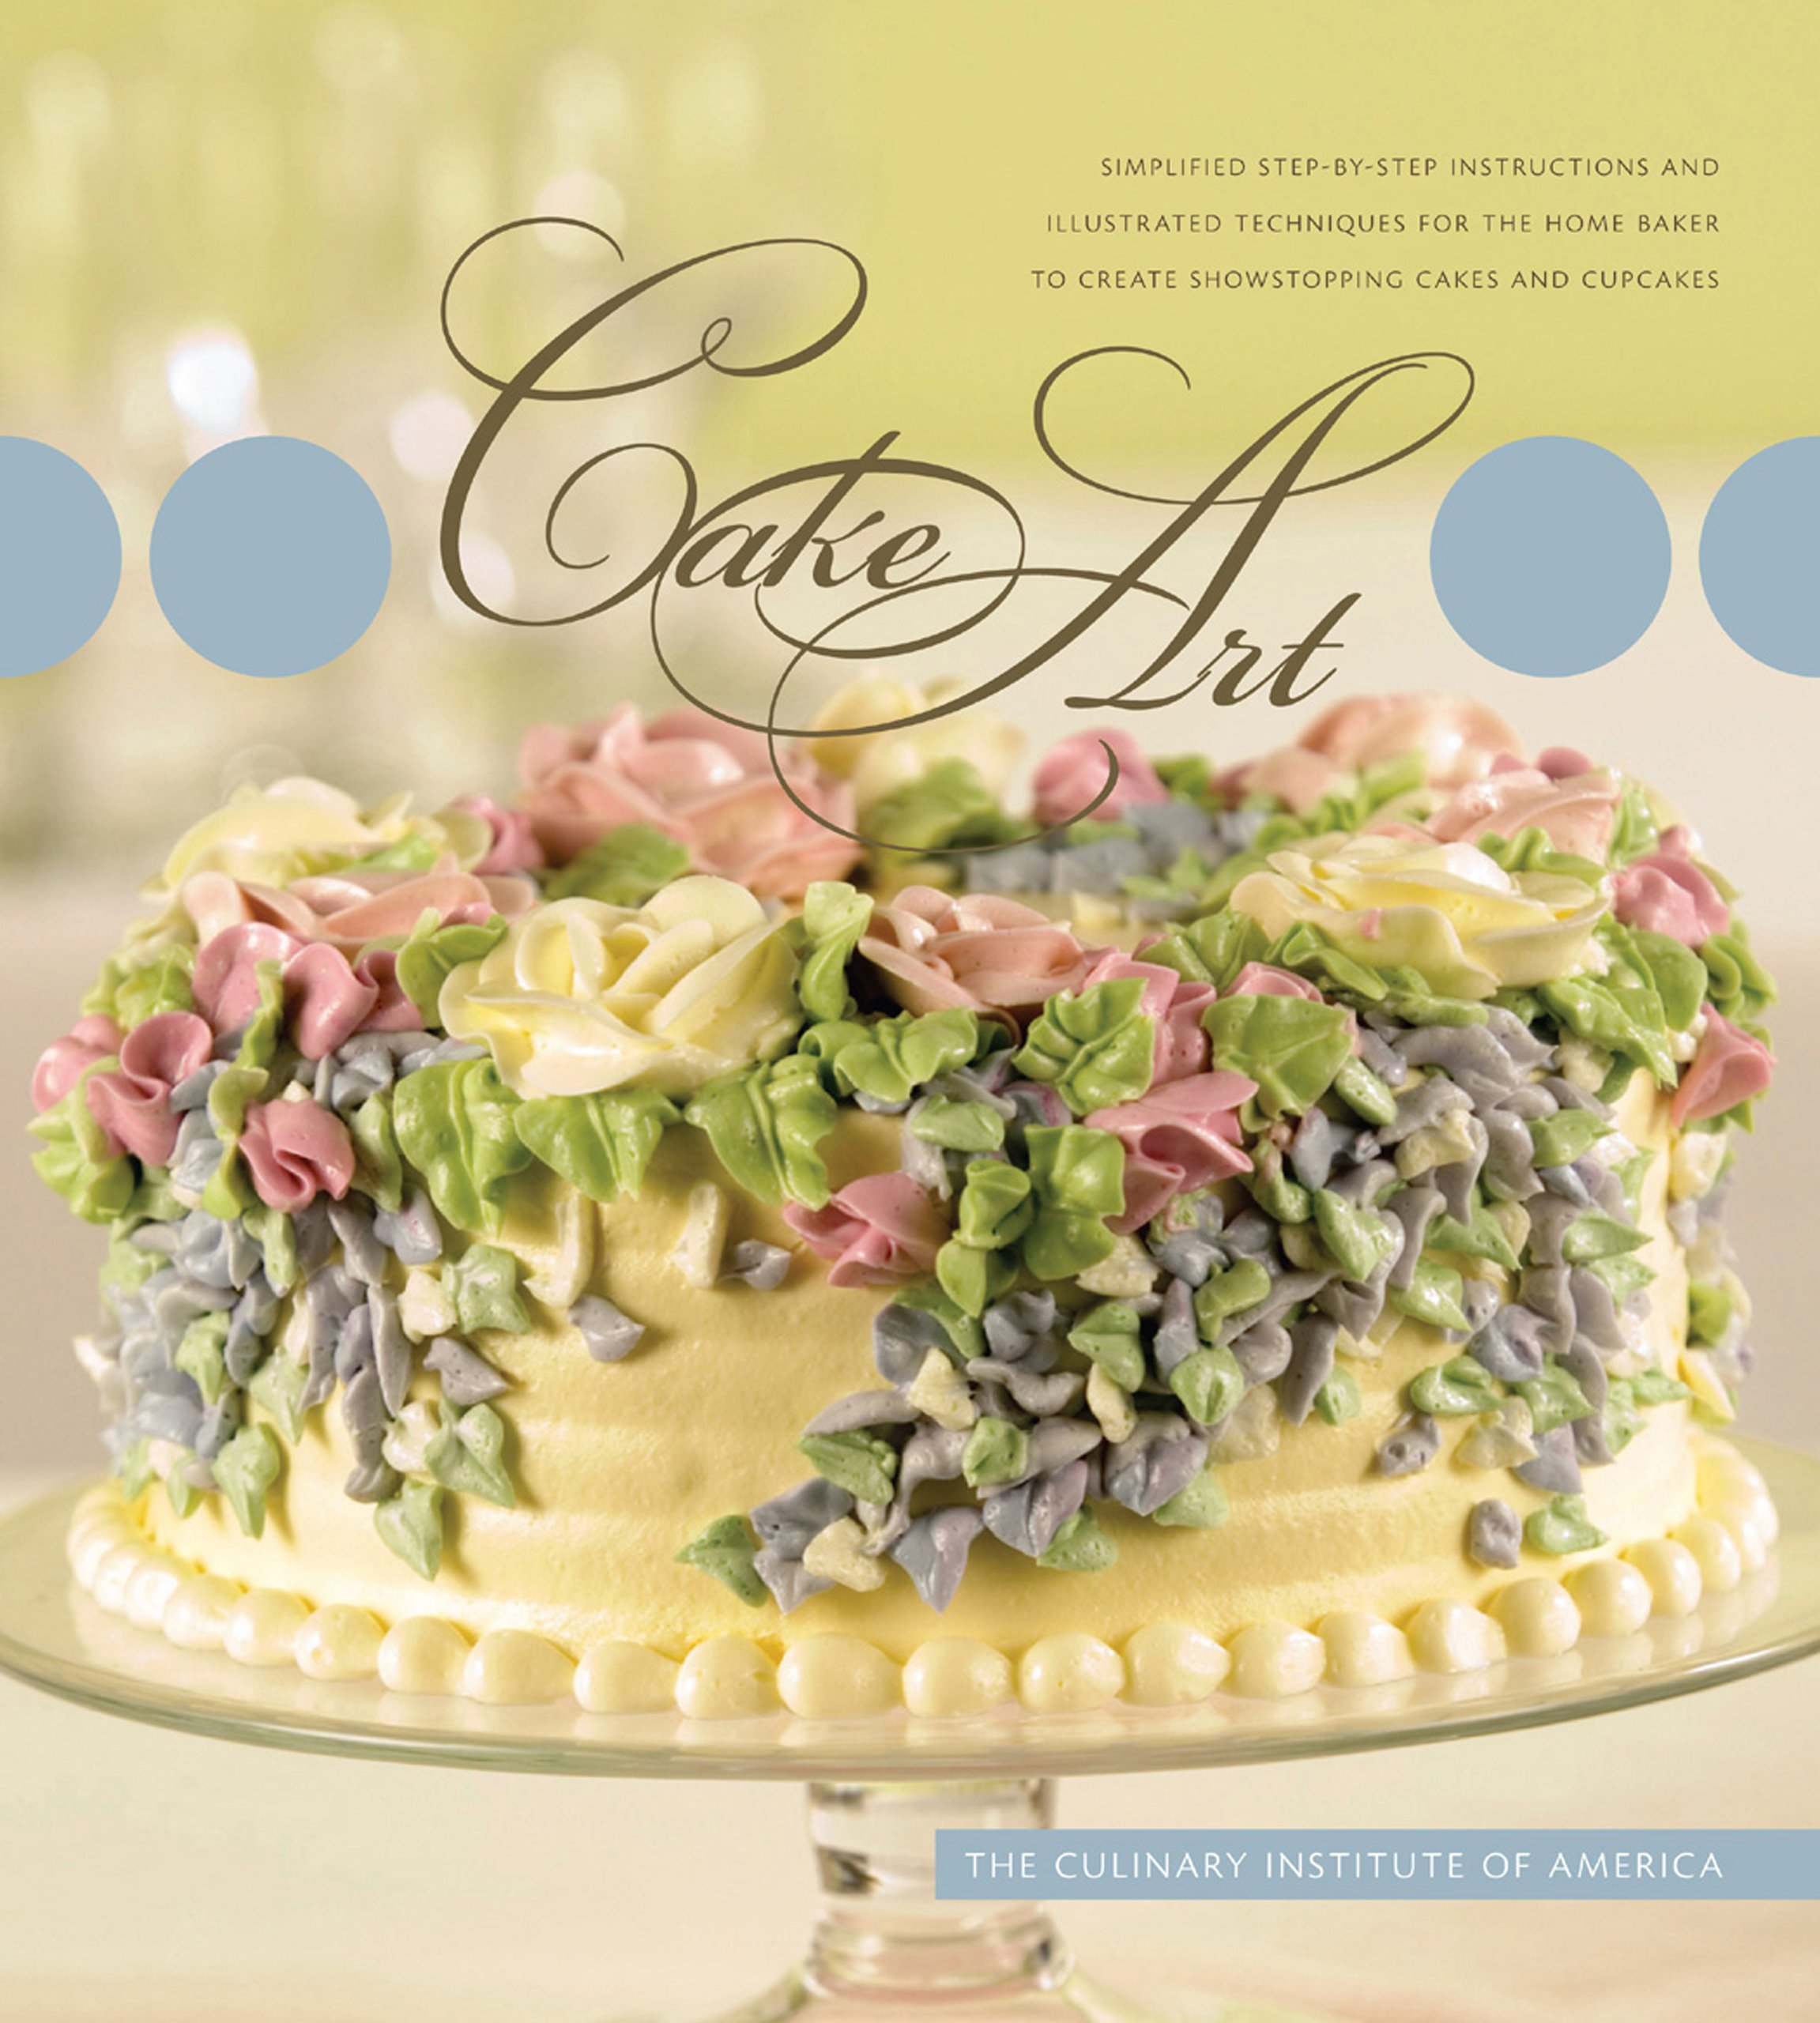 Cake Art Simplified Step By Step Instructions And Ilrated Techniques For The Home Baker To Create Show Stopping Cakes And Cupcakes The Culinary